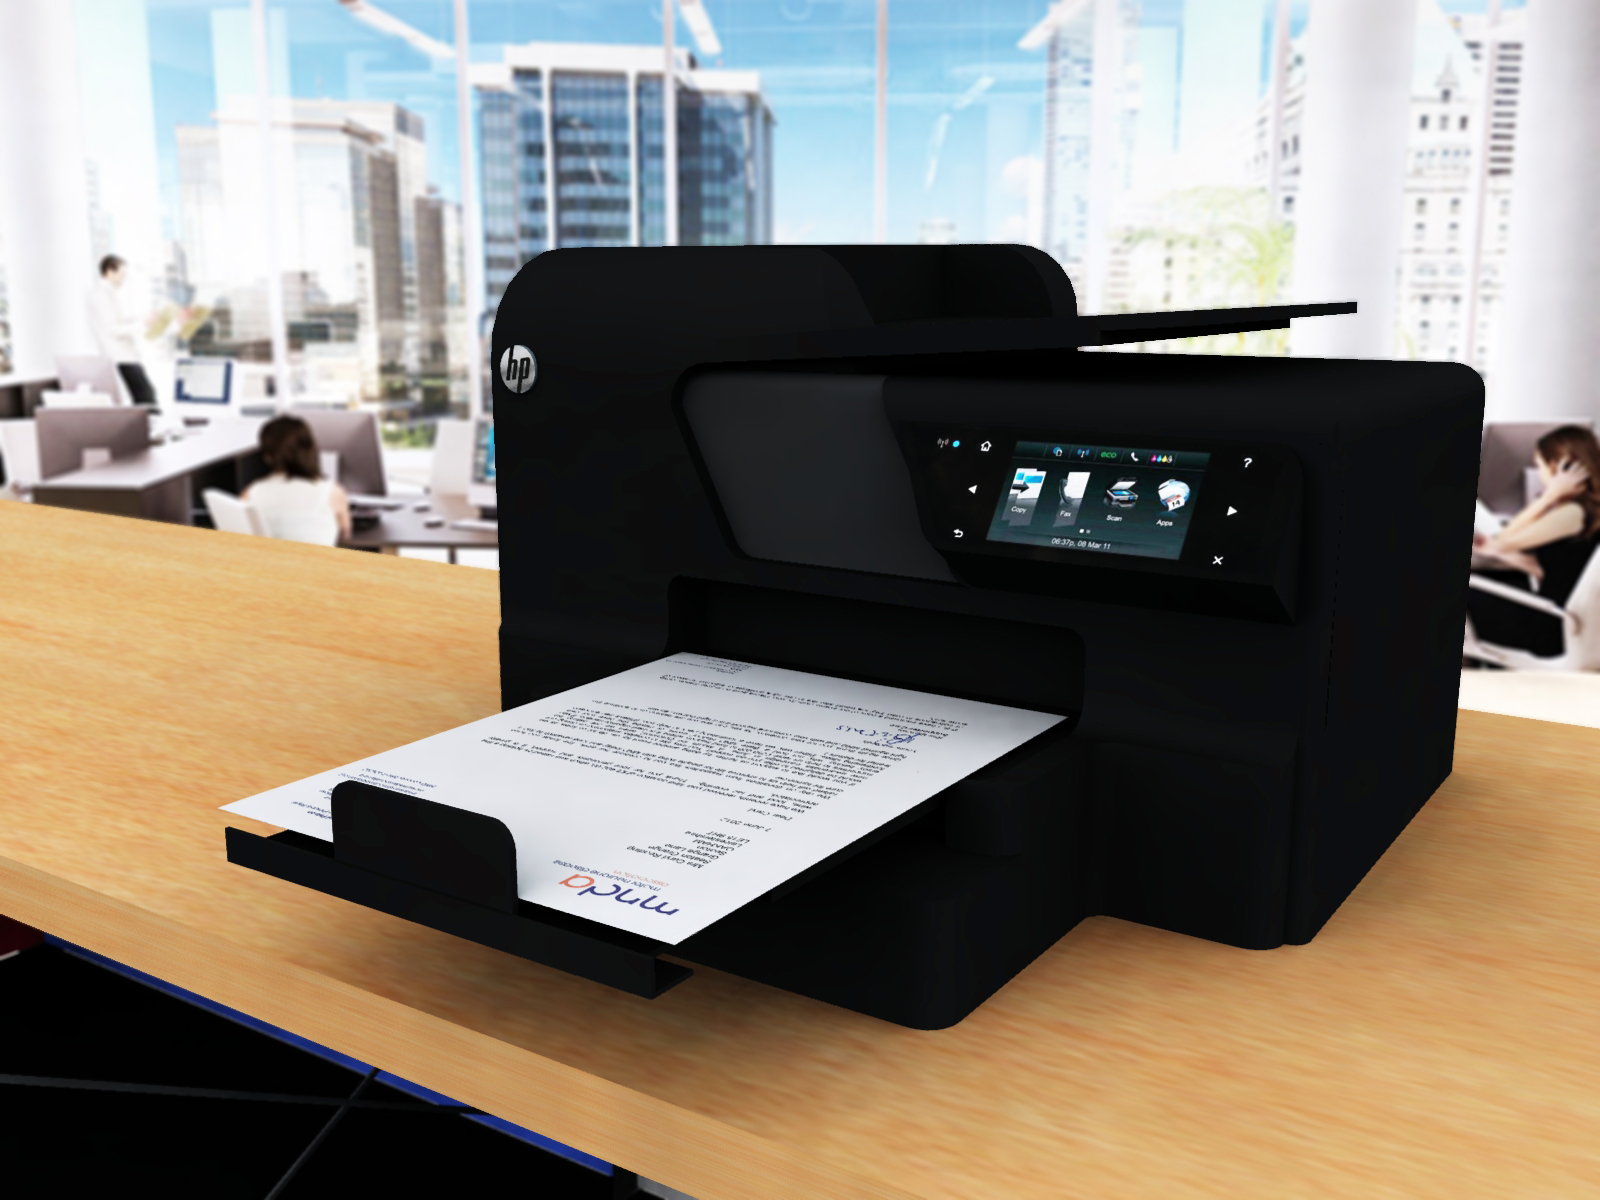 Hp Officejet Pro 8600 All In One Printer Vue 3d Models